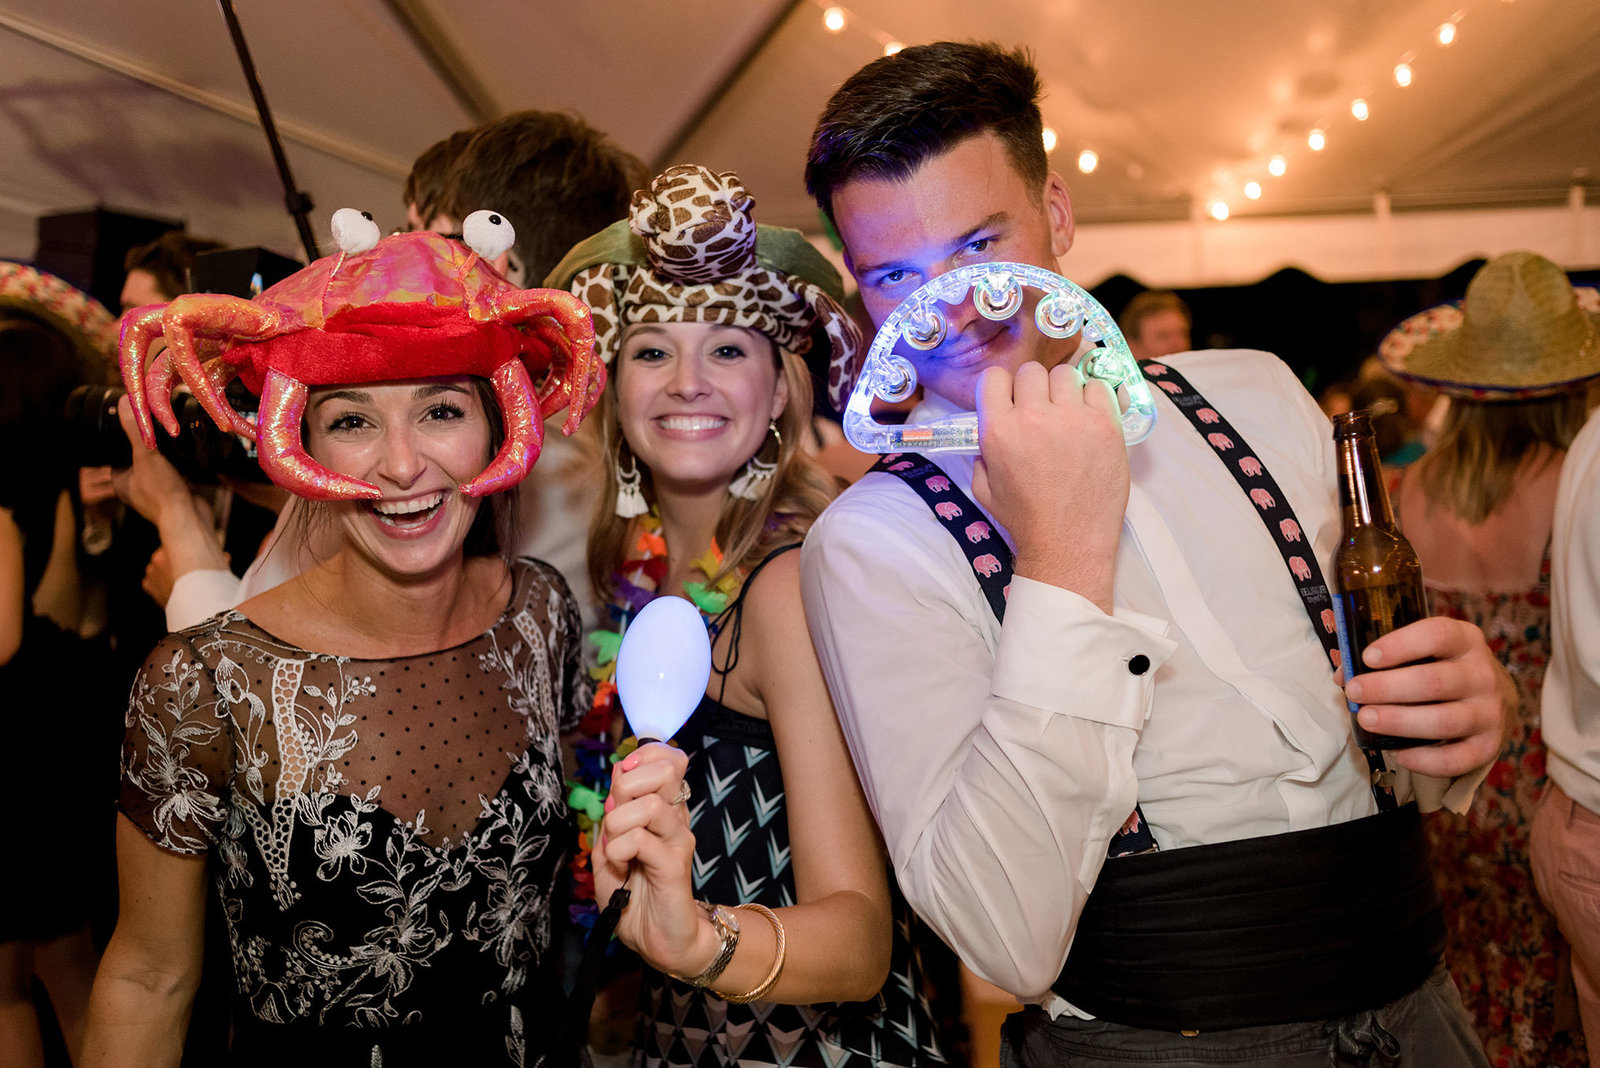 20190526-Pura-Soul-Photo-Caroline-Daniel-Wedding-1087